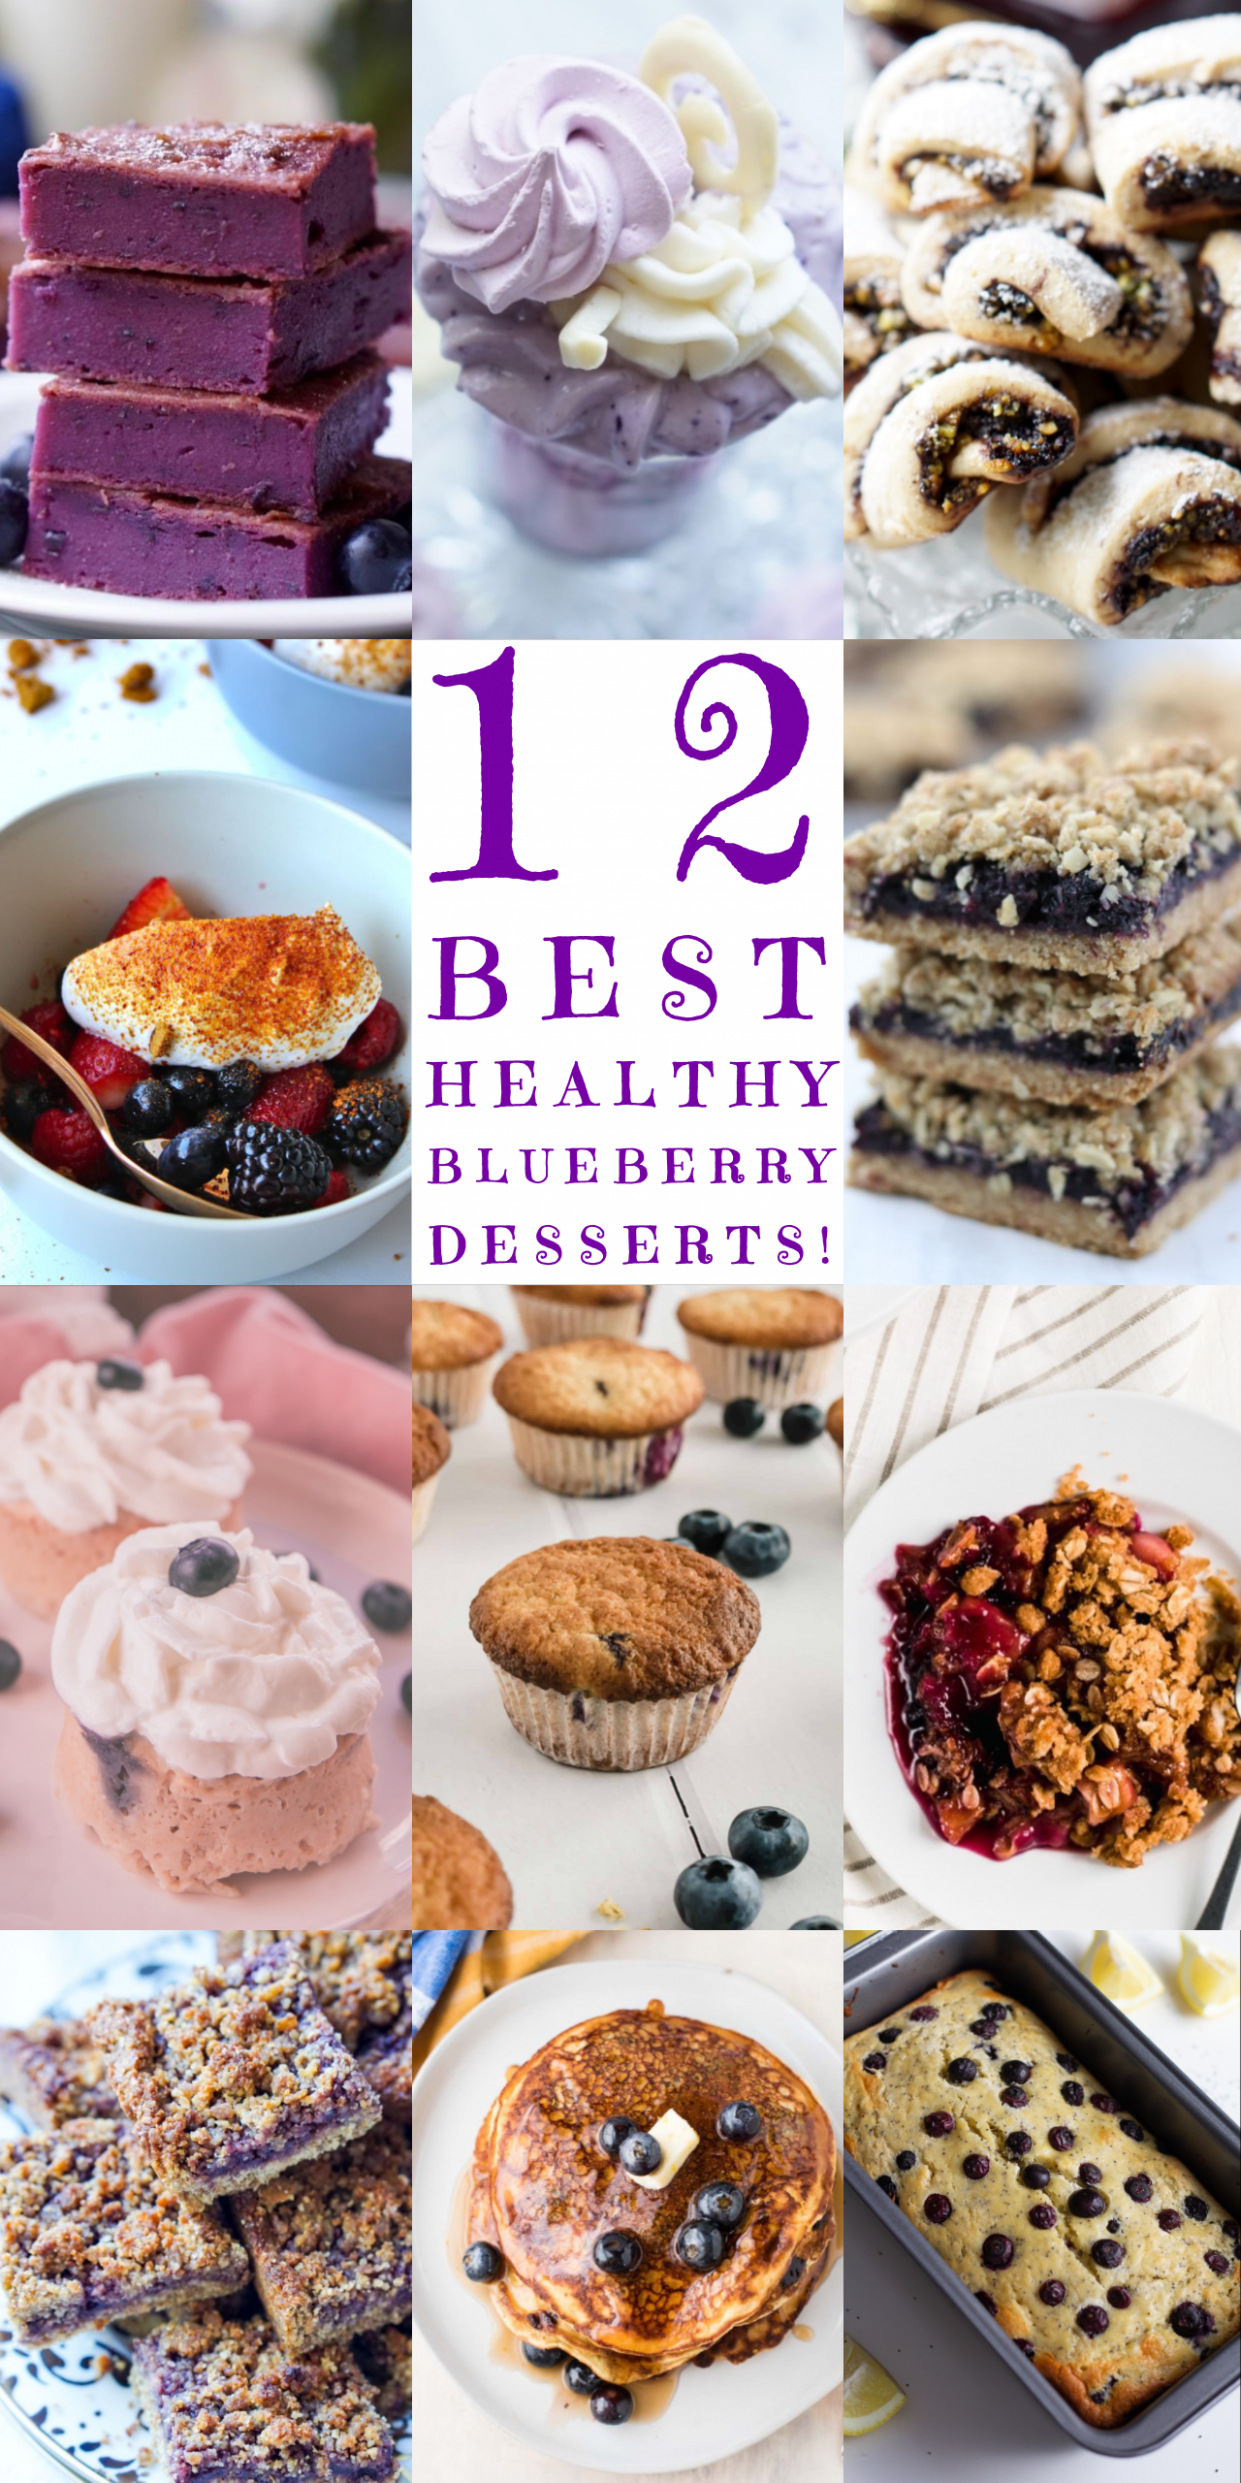 Healthy Blueberry Dessert Recipes | Healthy blueberry desserts ...